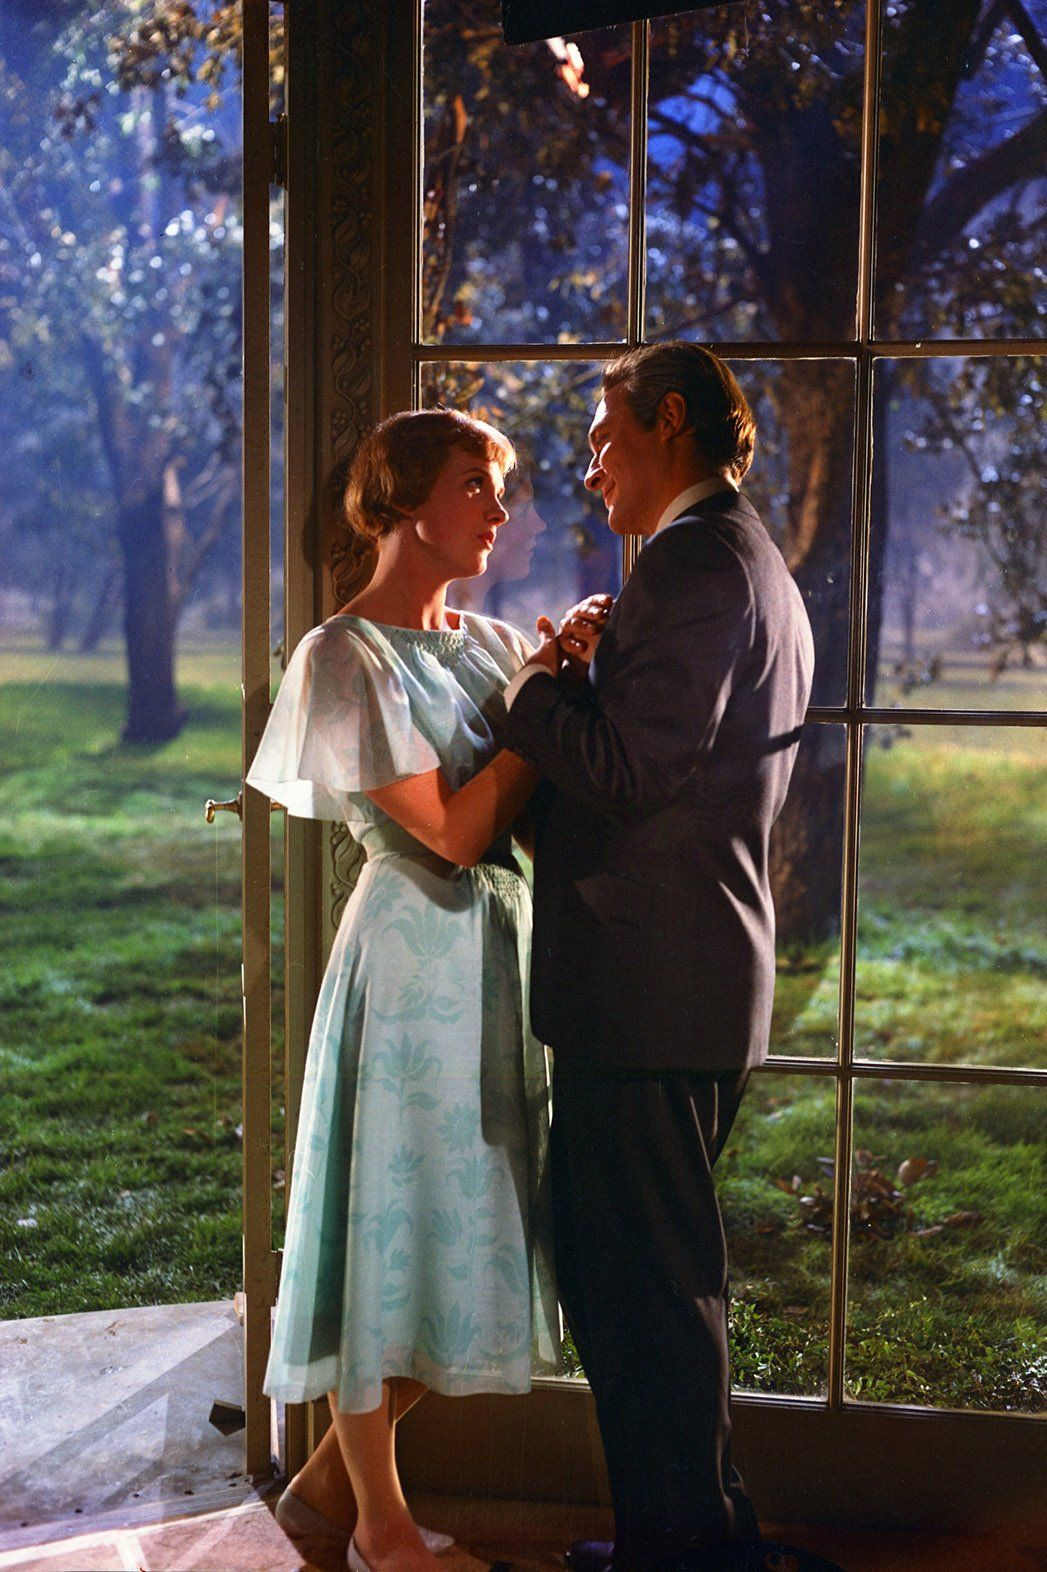 'The Sound of Music:' The Story Behind Its 4K Restoration